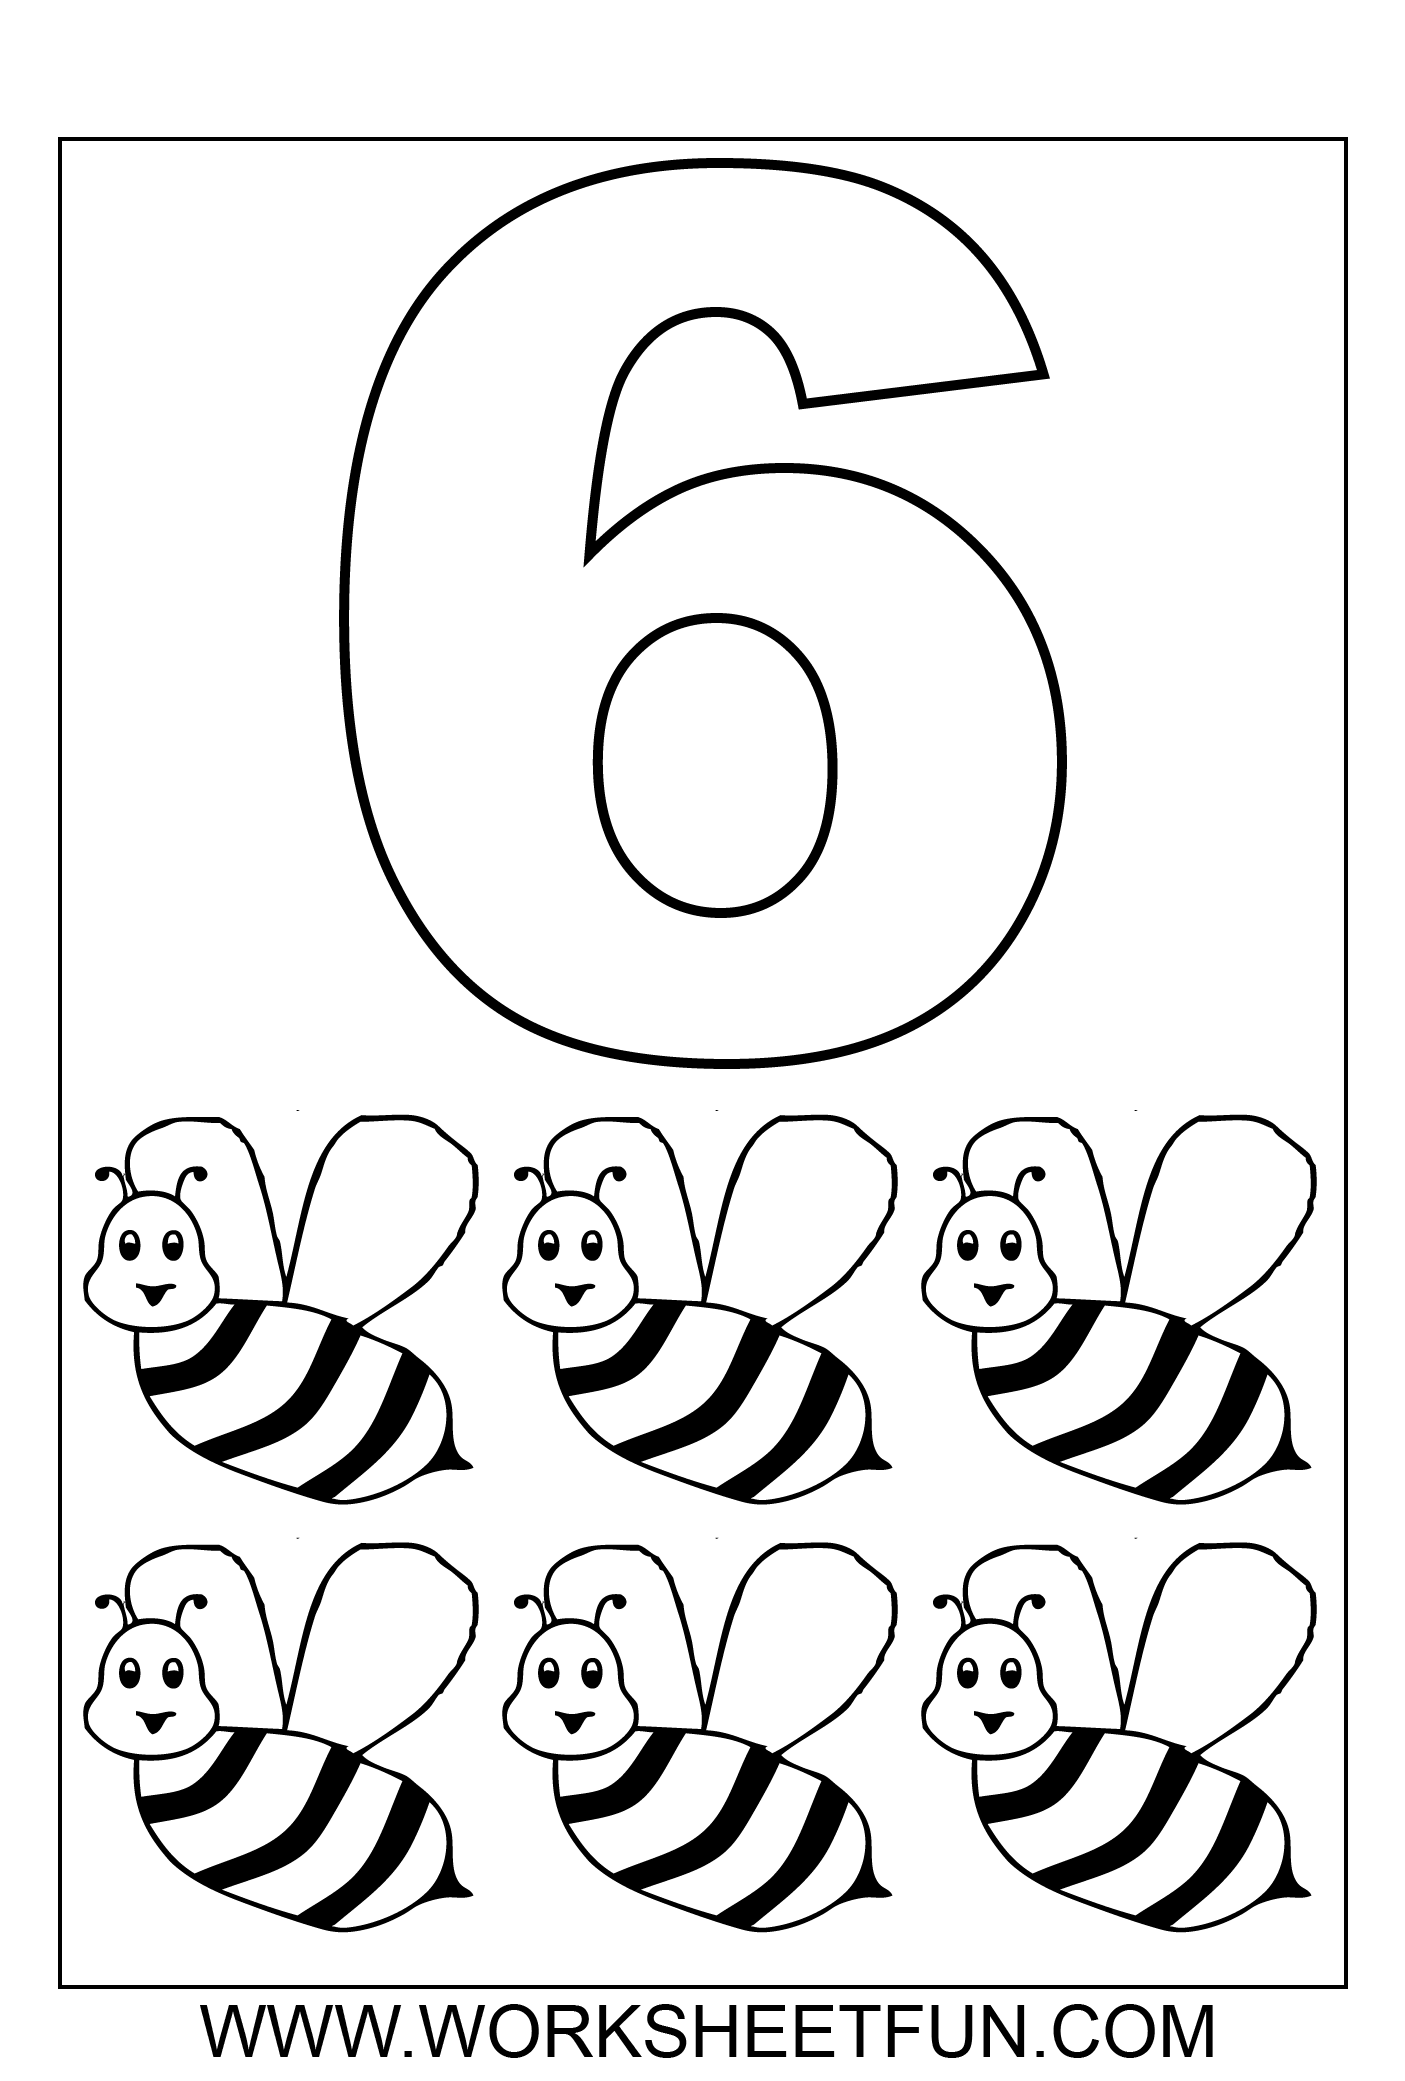 Colouring on worksheets - Number Coloring 1 10 Ten Worksheets